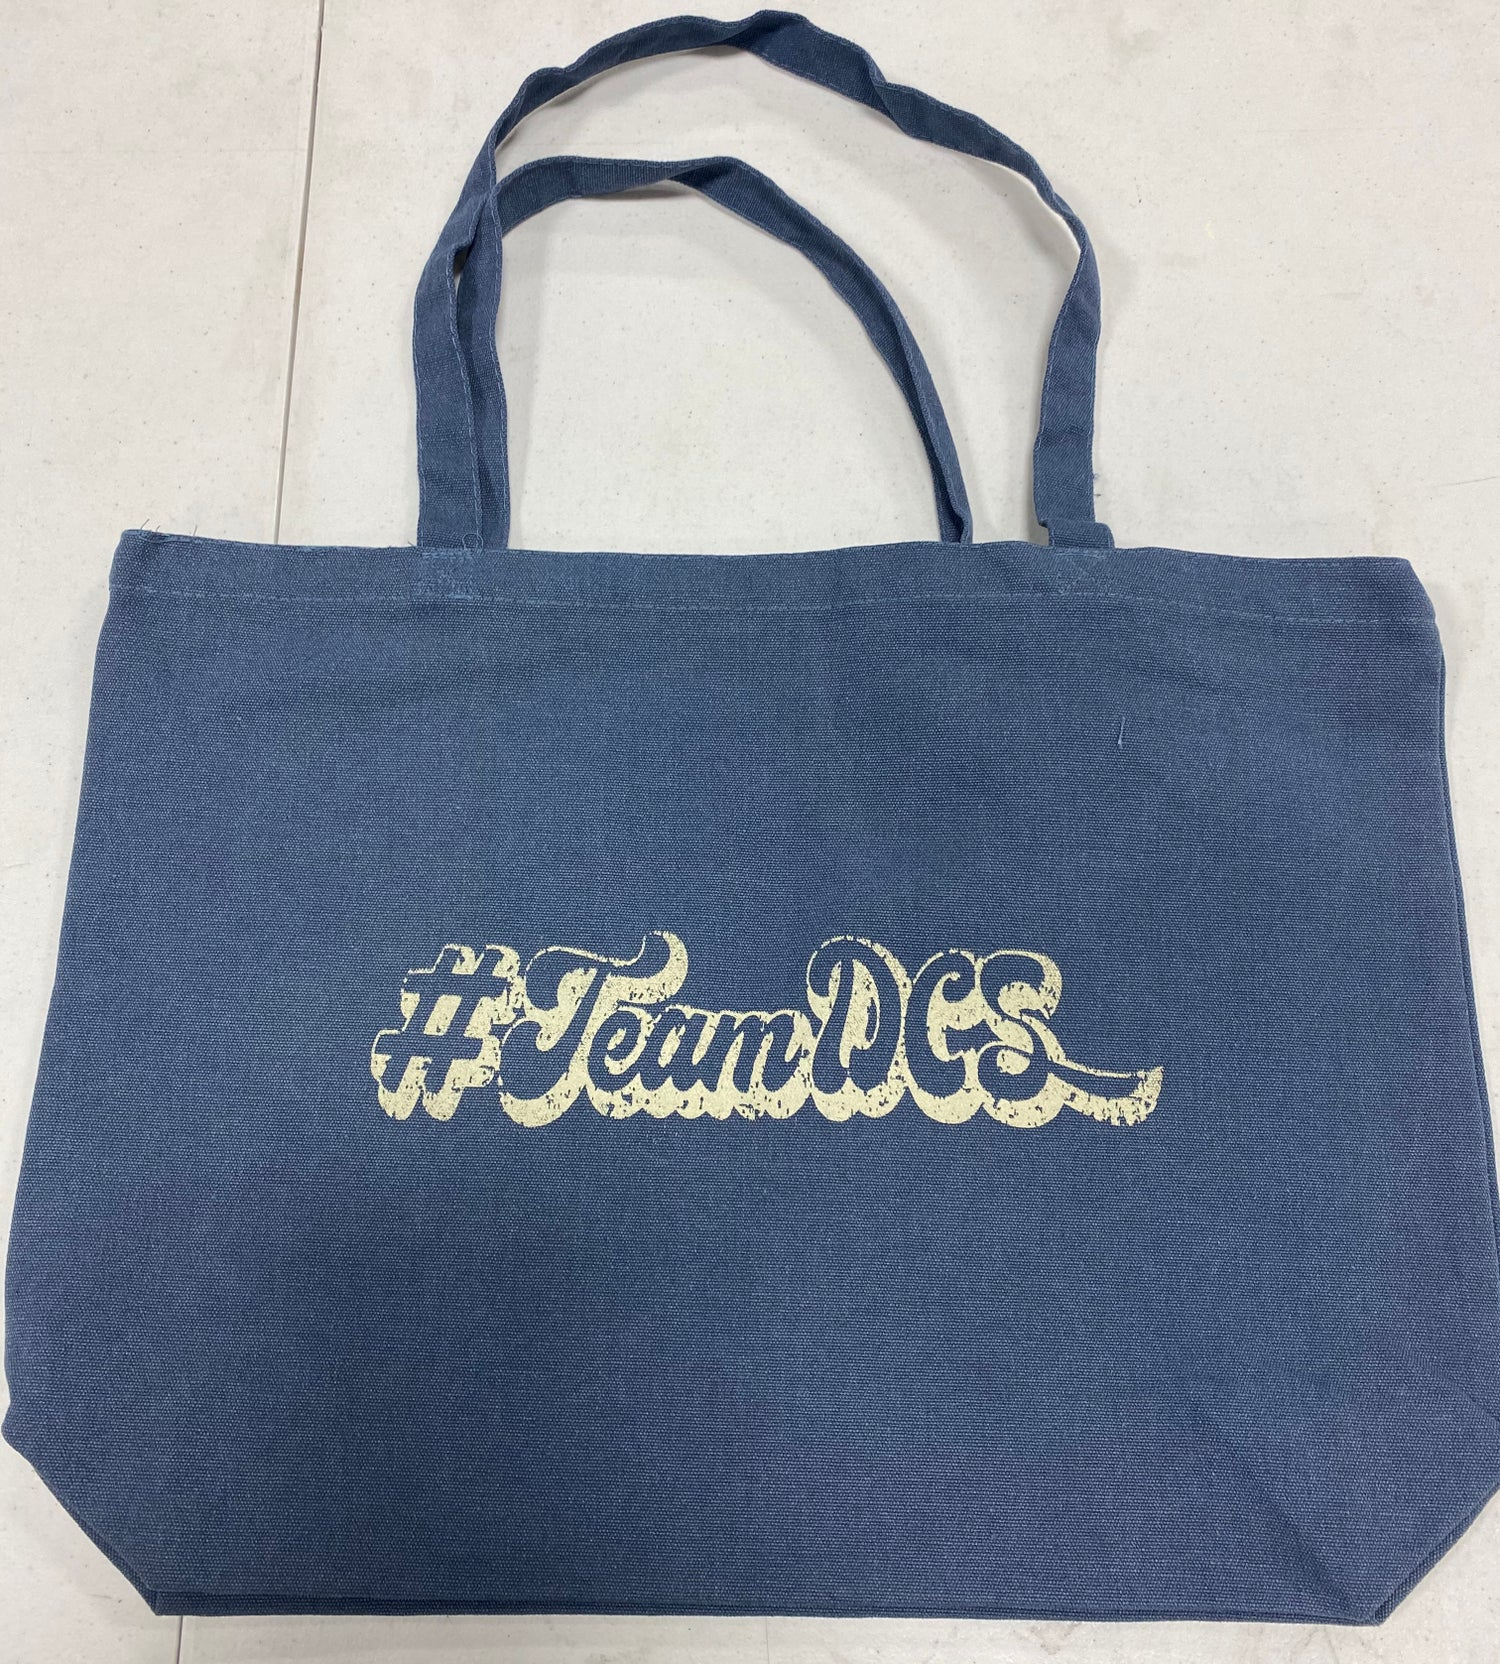 Image of #TeamDCS Large Tote - Blue